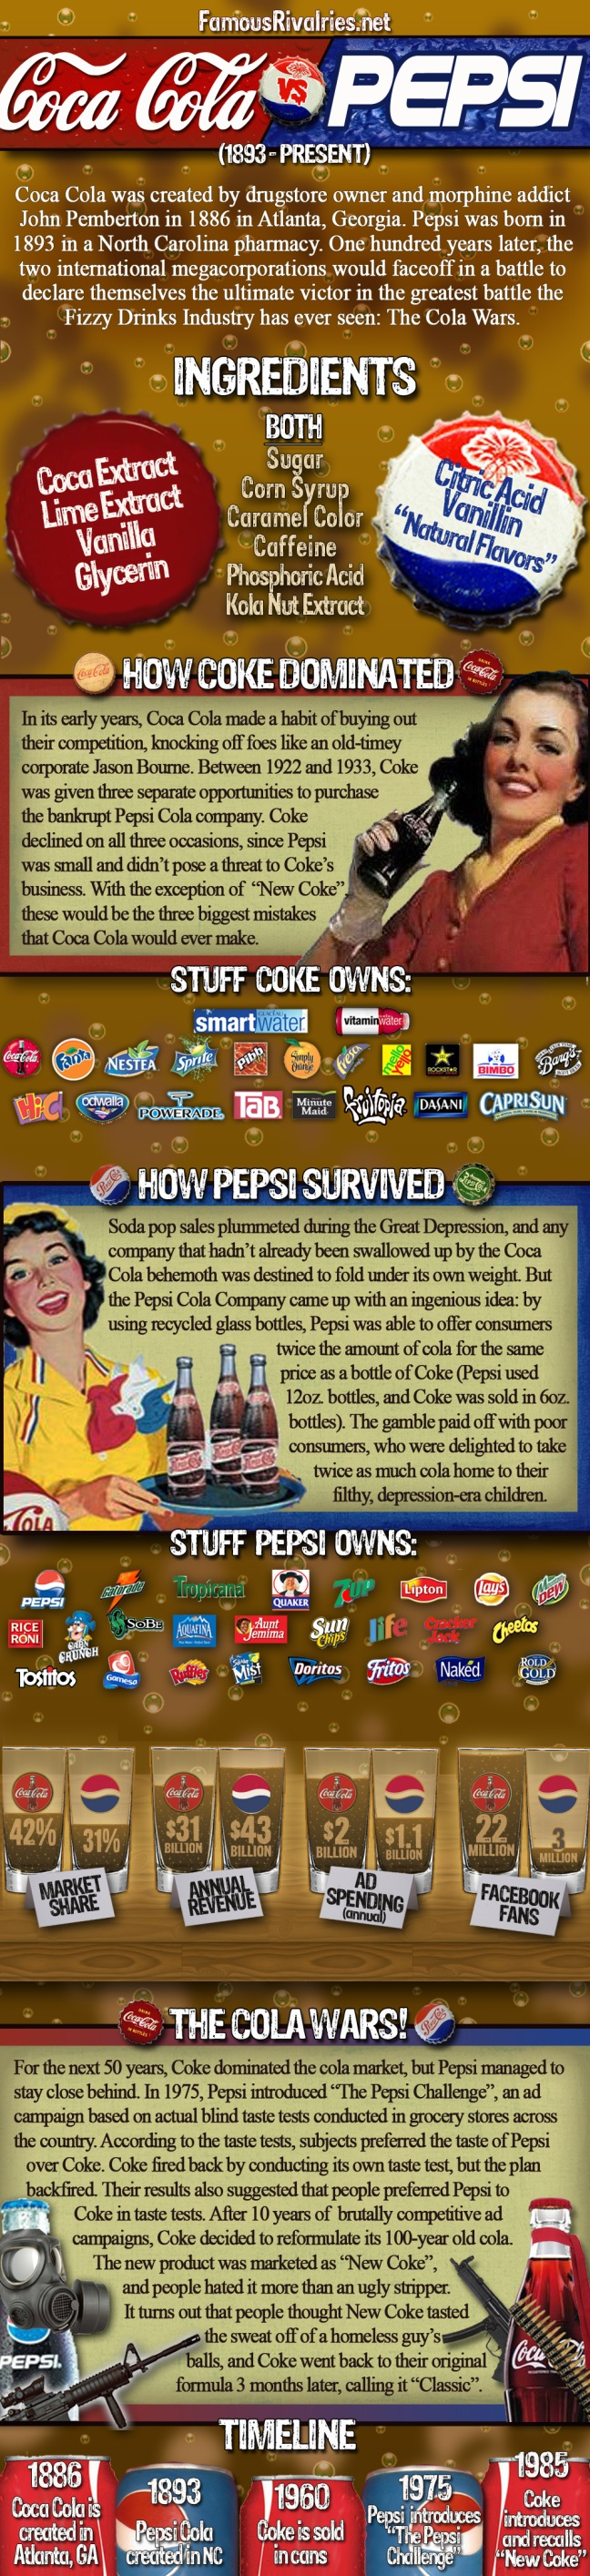 Coke vs. Pepsi (Infographic)